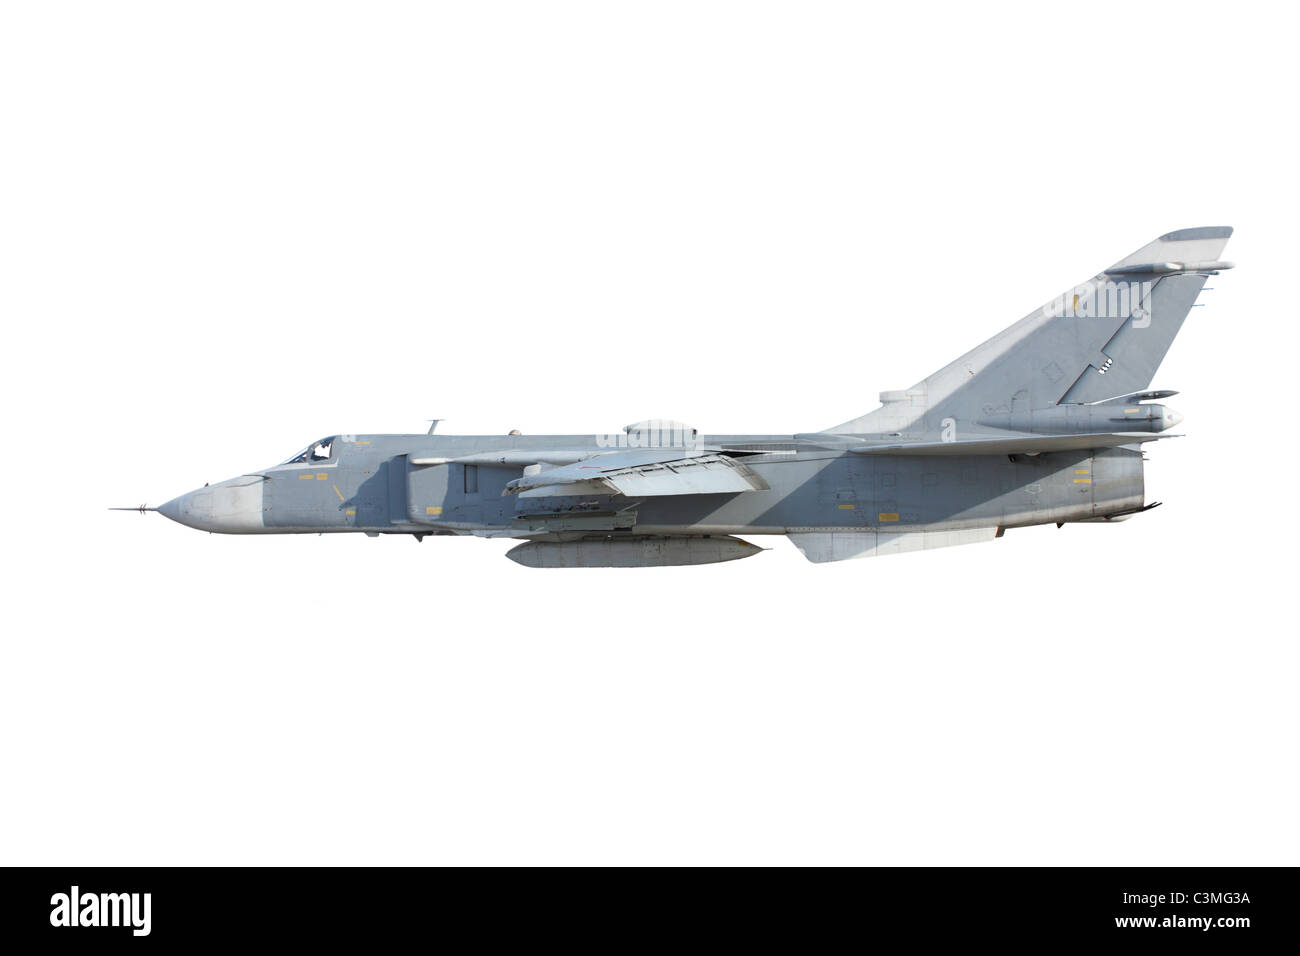 Military jet bomber Su-24 Fencer on take off and landing - Stock Image